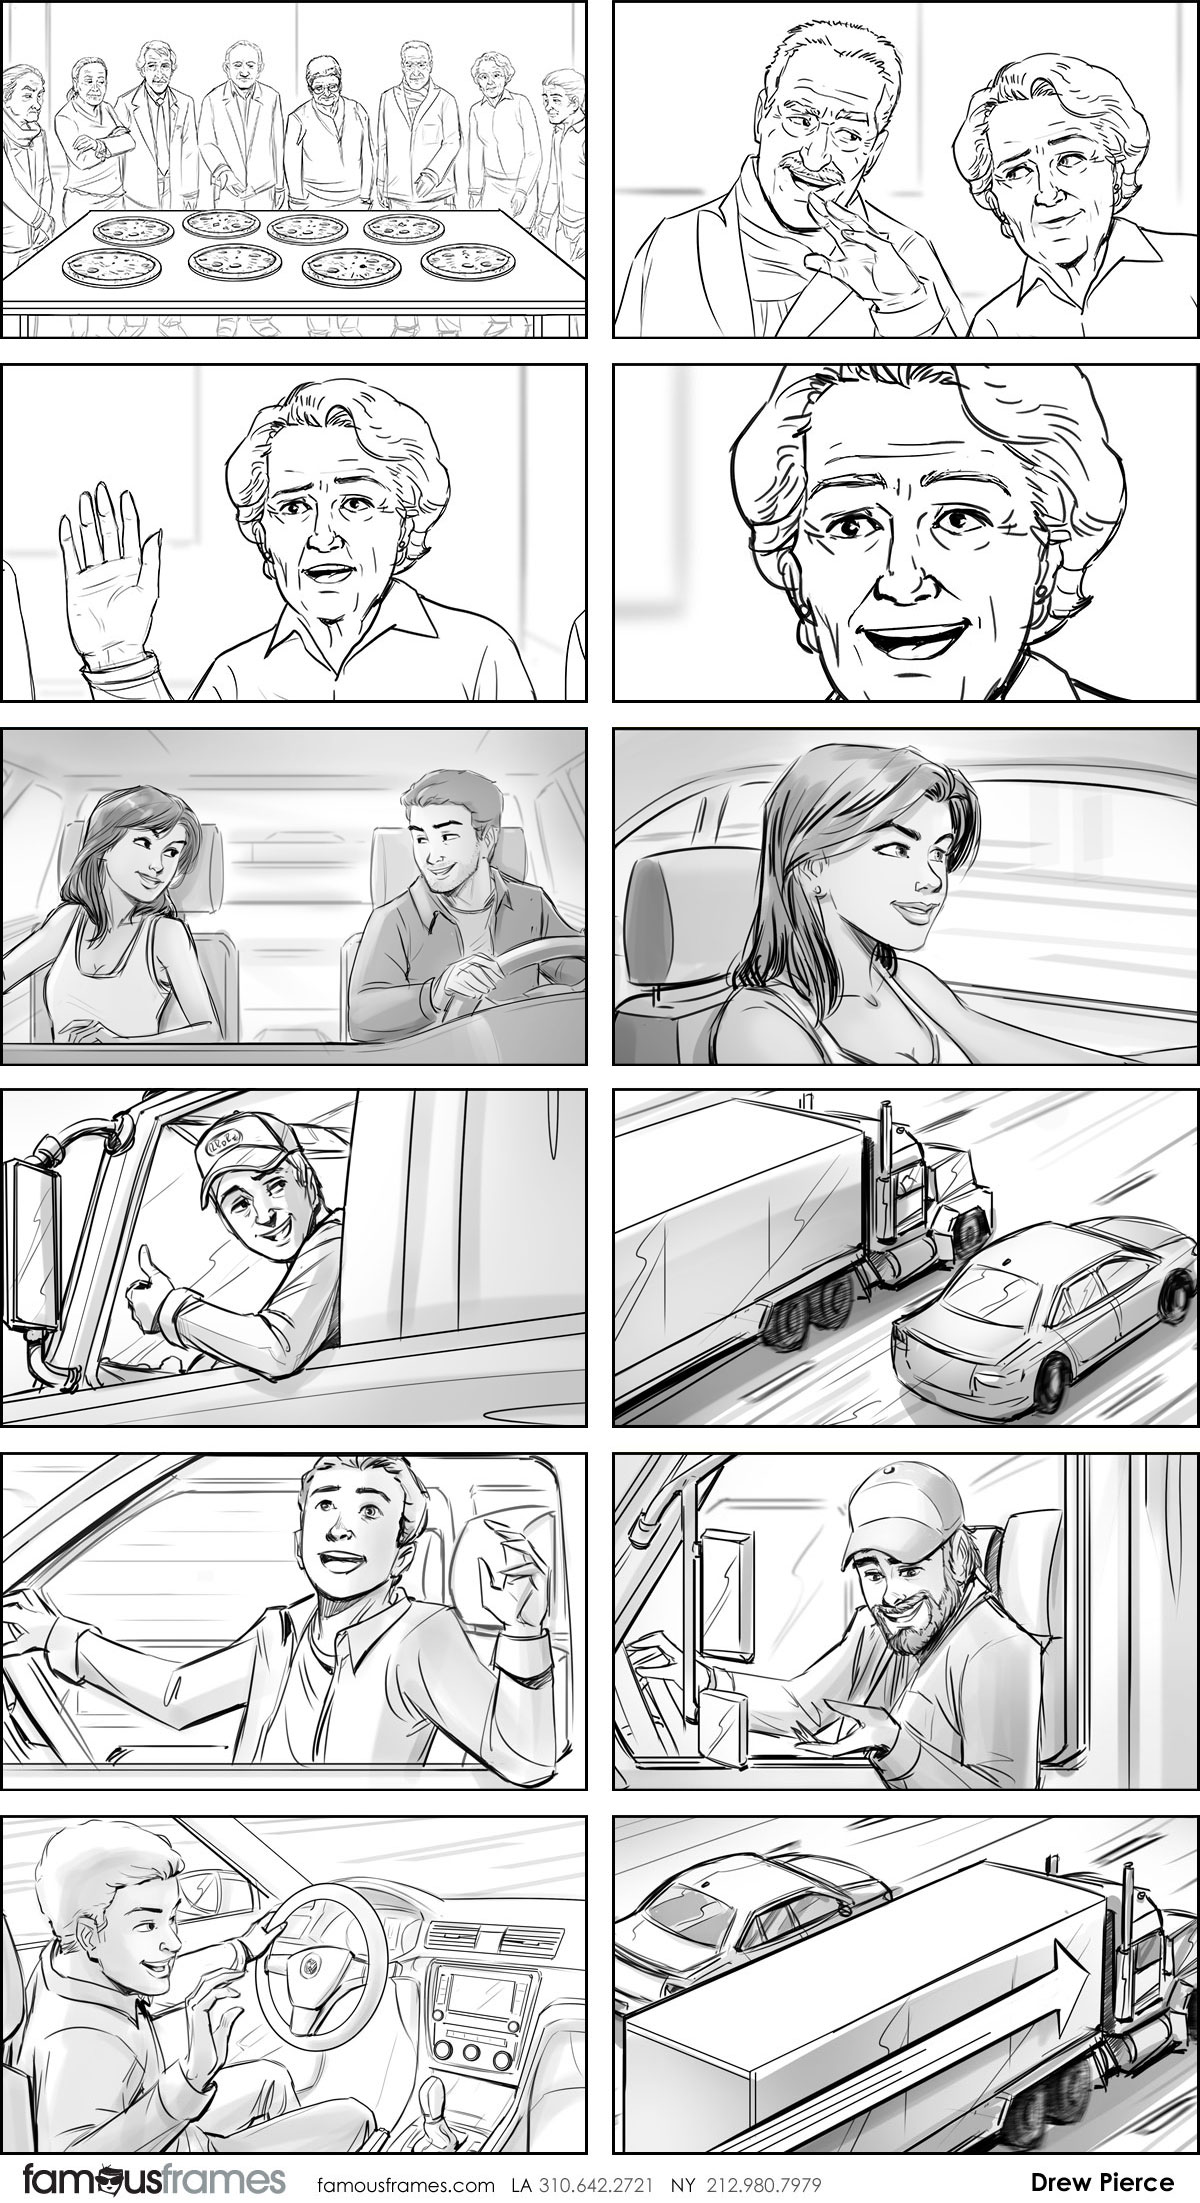 Drew Pierce's People - B&W Line storyboard art (Image #218_114_1549053926)